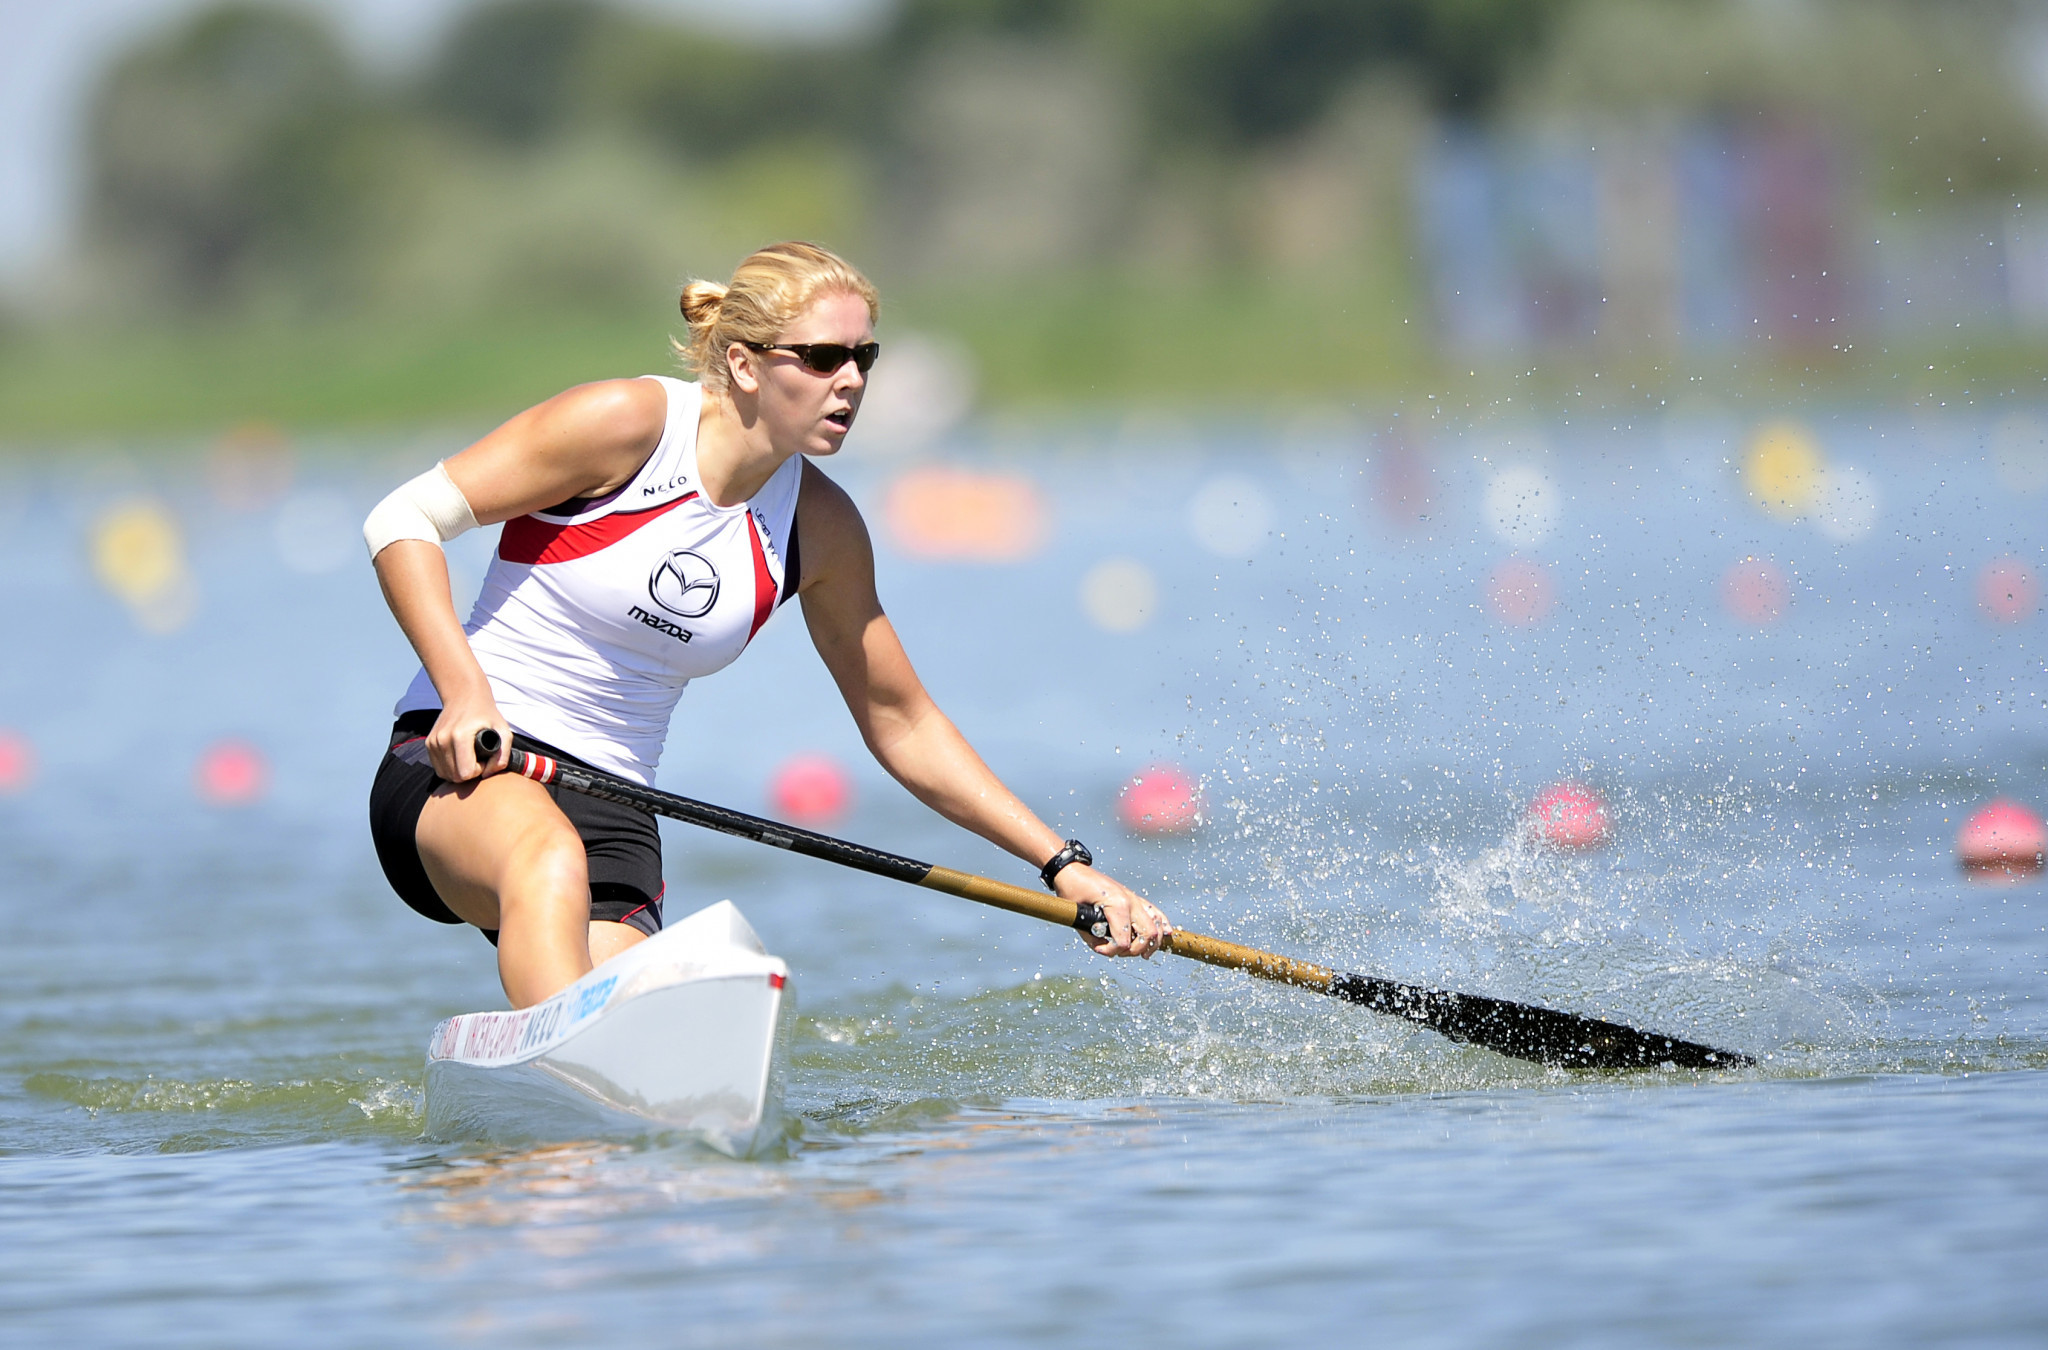 Canada's Vincent qualifies for women's Olympic canoe sprint debut at Tokyo 2020